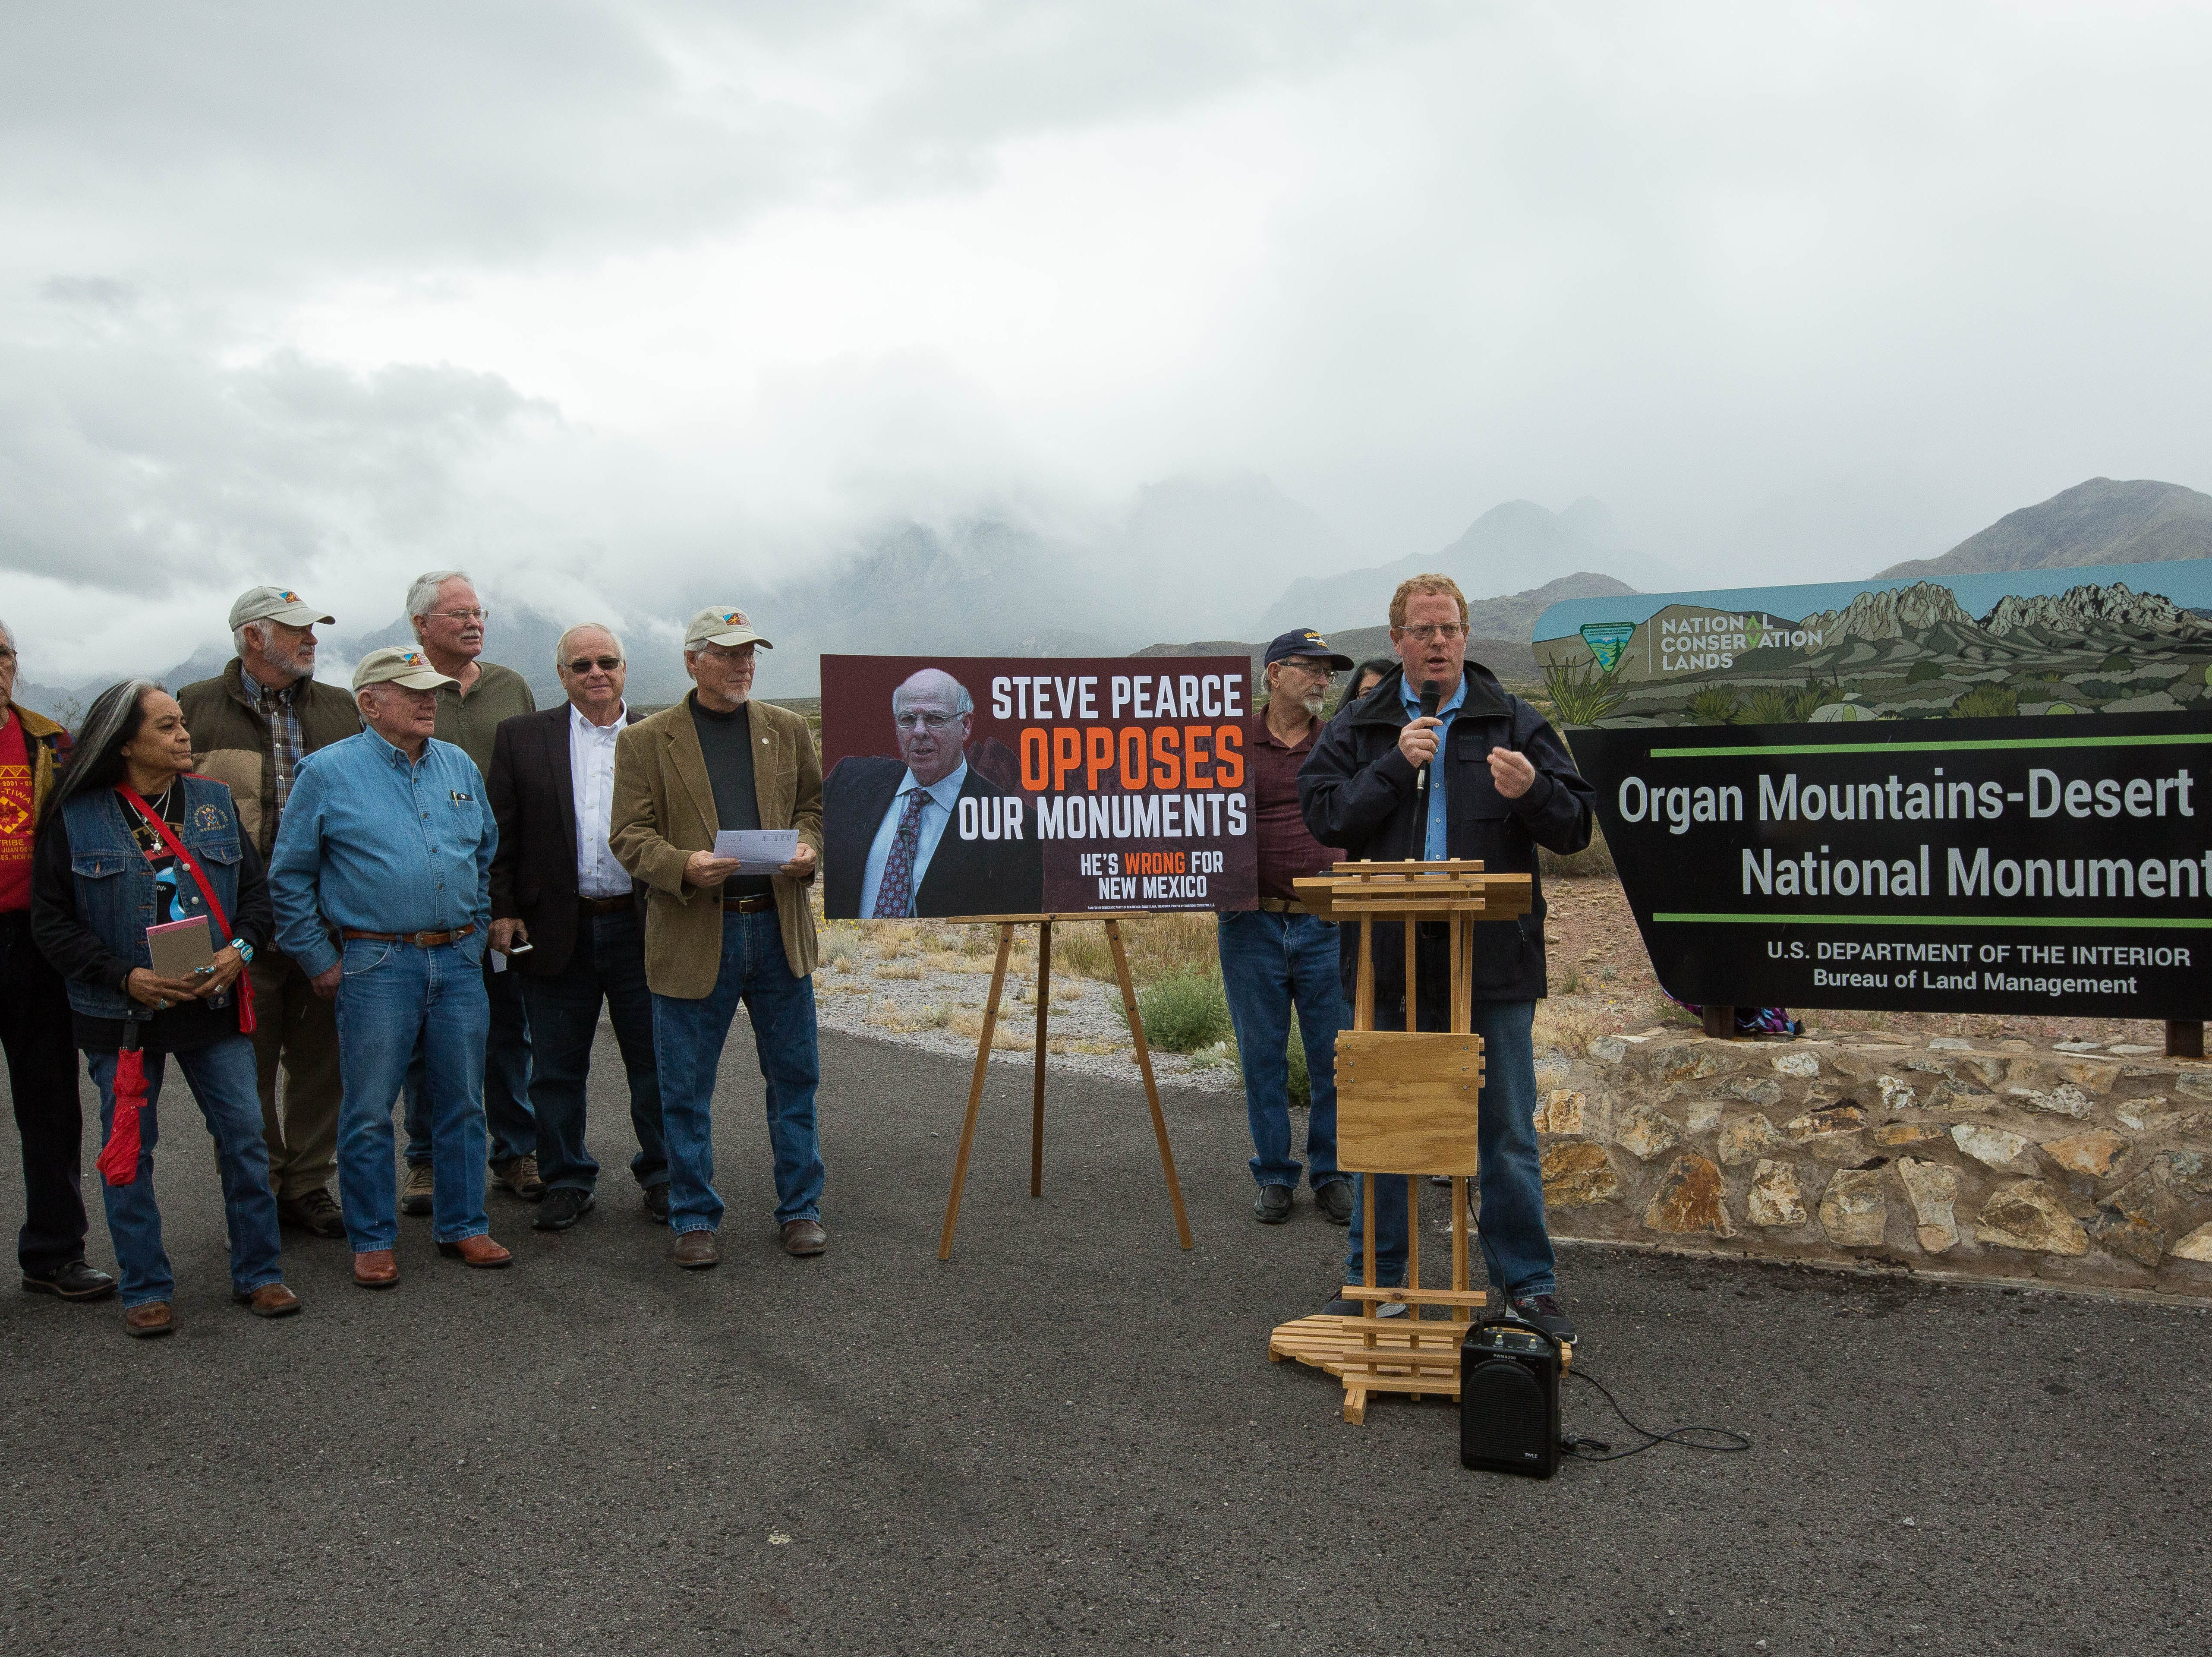 Jeff Steinborn, State Senator, addressing concerns about Steve Pearce who is running for Governor and endorsing Michelle Lujan-Grisham for Governor, as he and concerned local leaders gathered at the Organ Mountains-Desert Peaks National Monument sign.